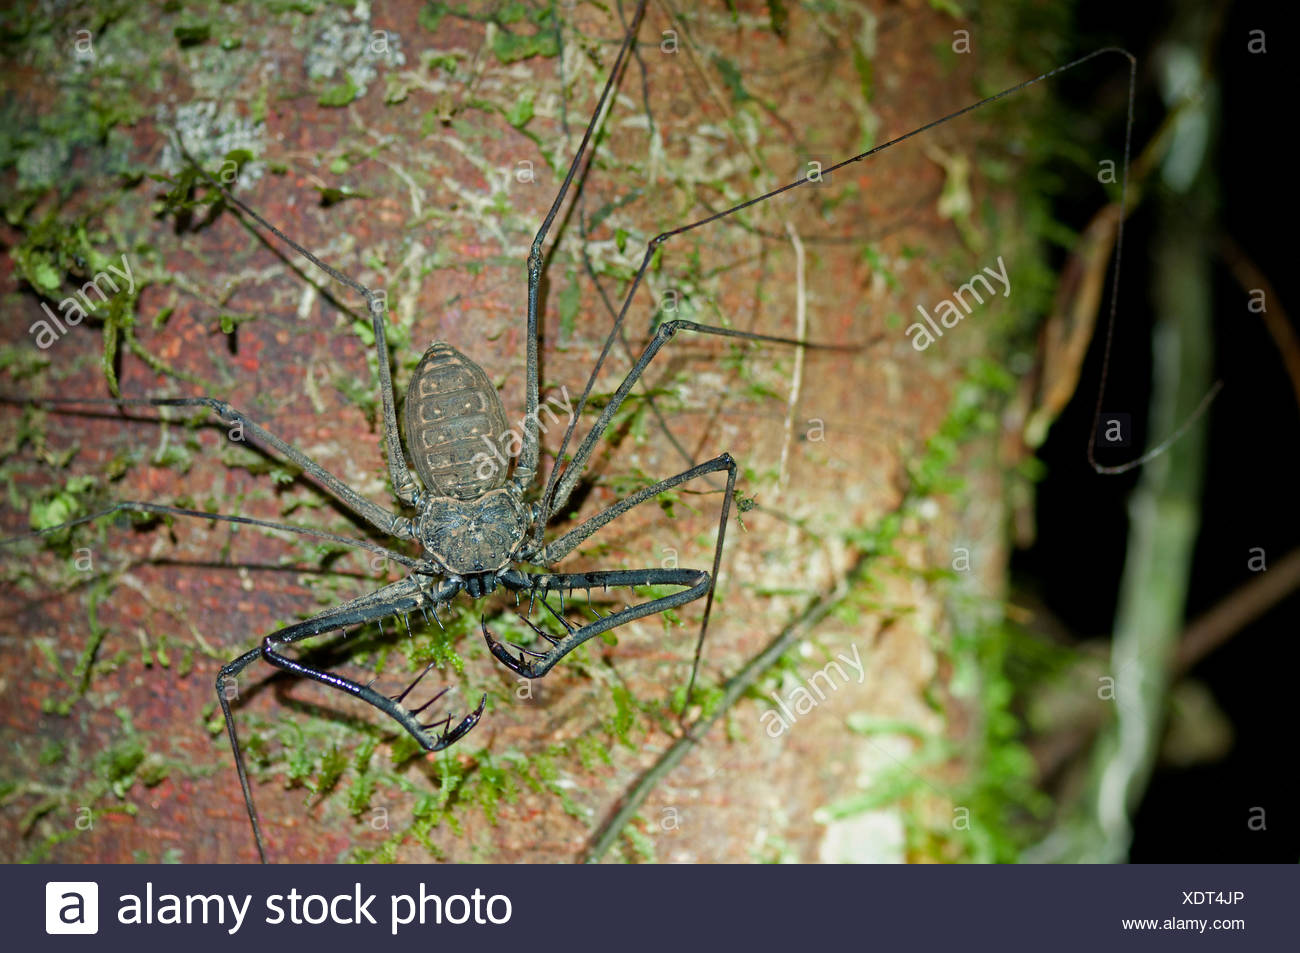 Whip spiders or tailless whip scorpions (Heterophrynus spec.), Tiputini rain forest, Yasuni National Park, Ecuador - Stock Image